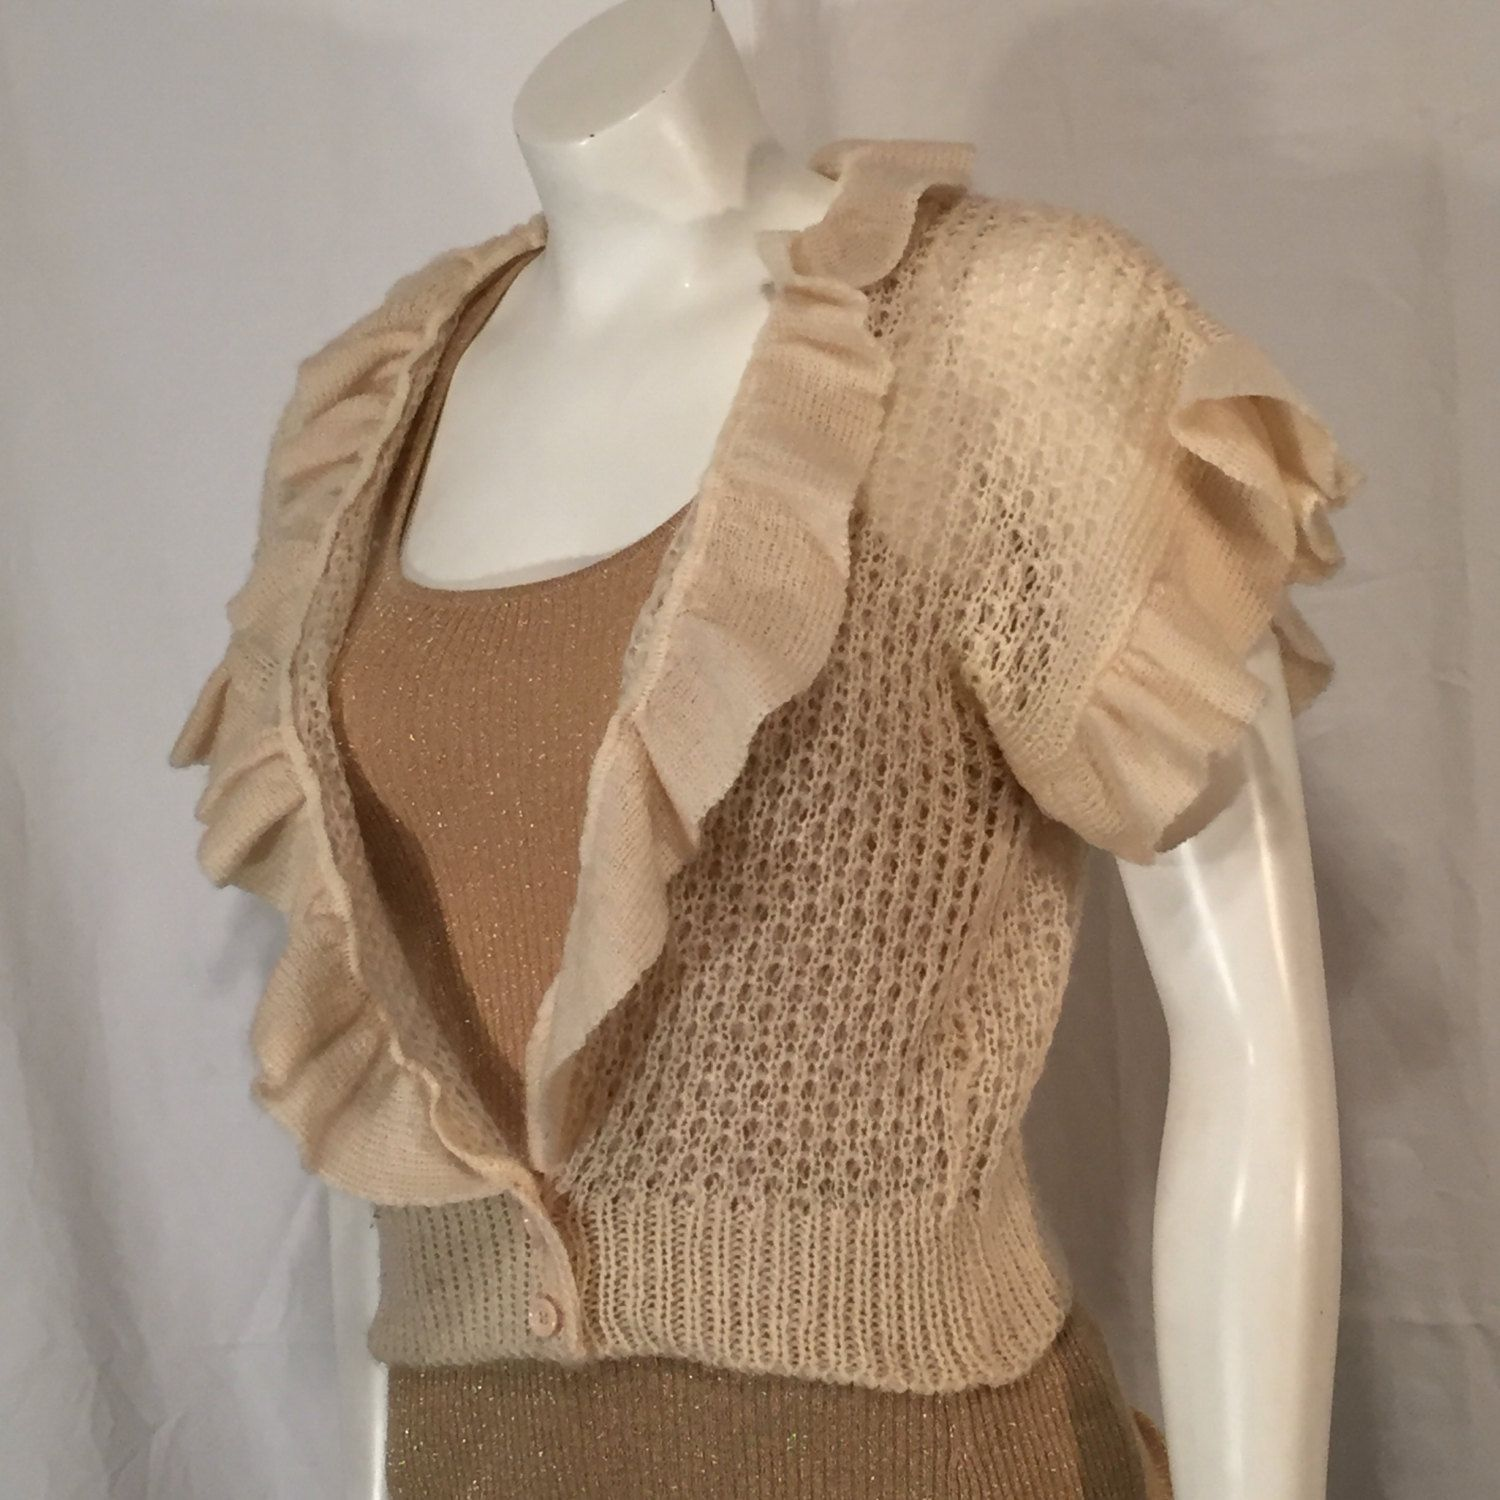 Vintage 70s Off White Cream Short Sleeve Shrug Sweater with ...